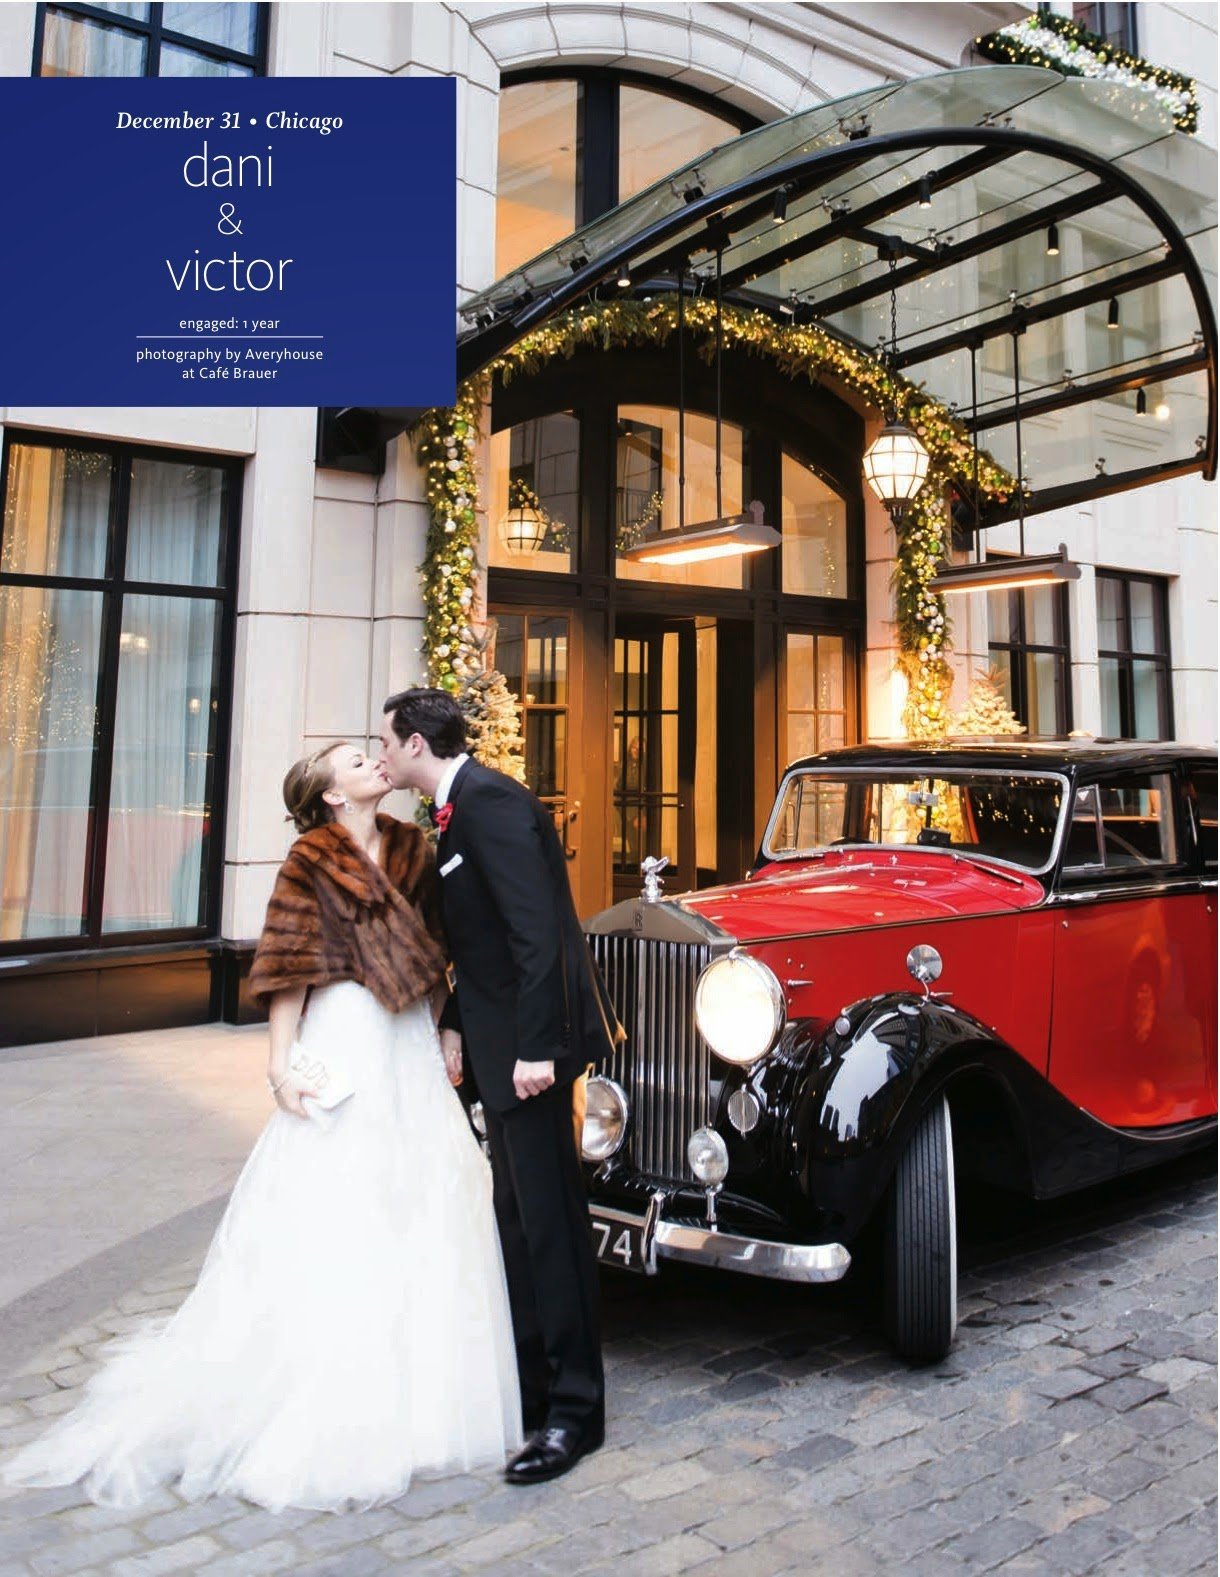 New Year's Eve Chicago Wedding Feature in The Knot Chicago